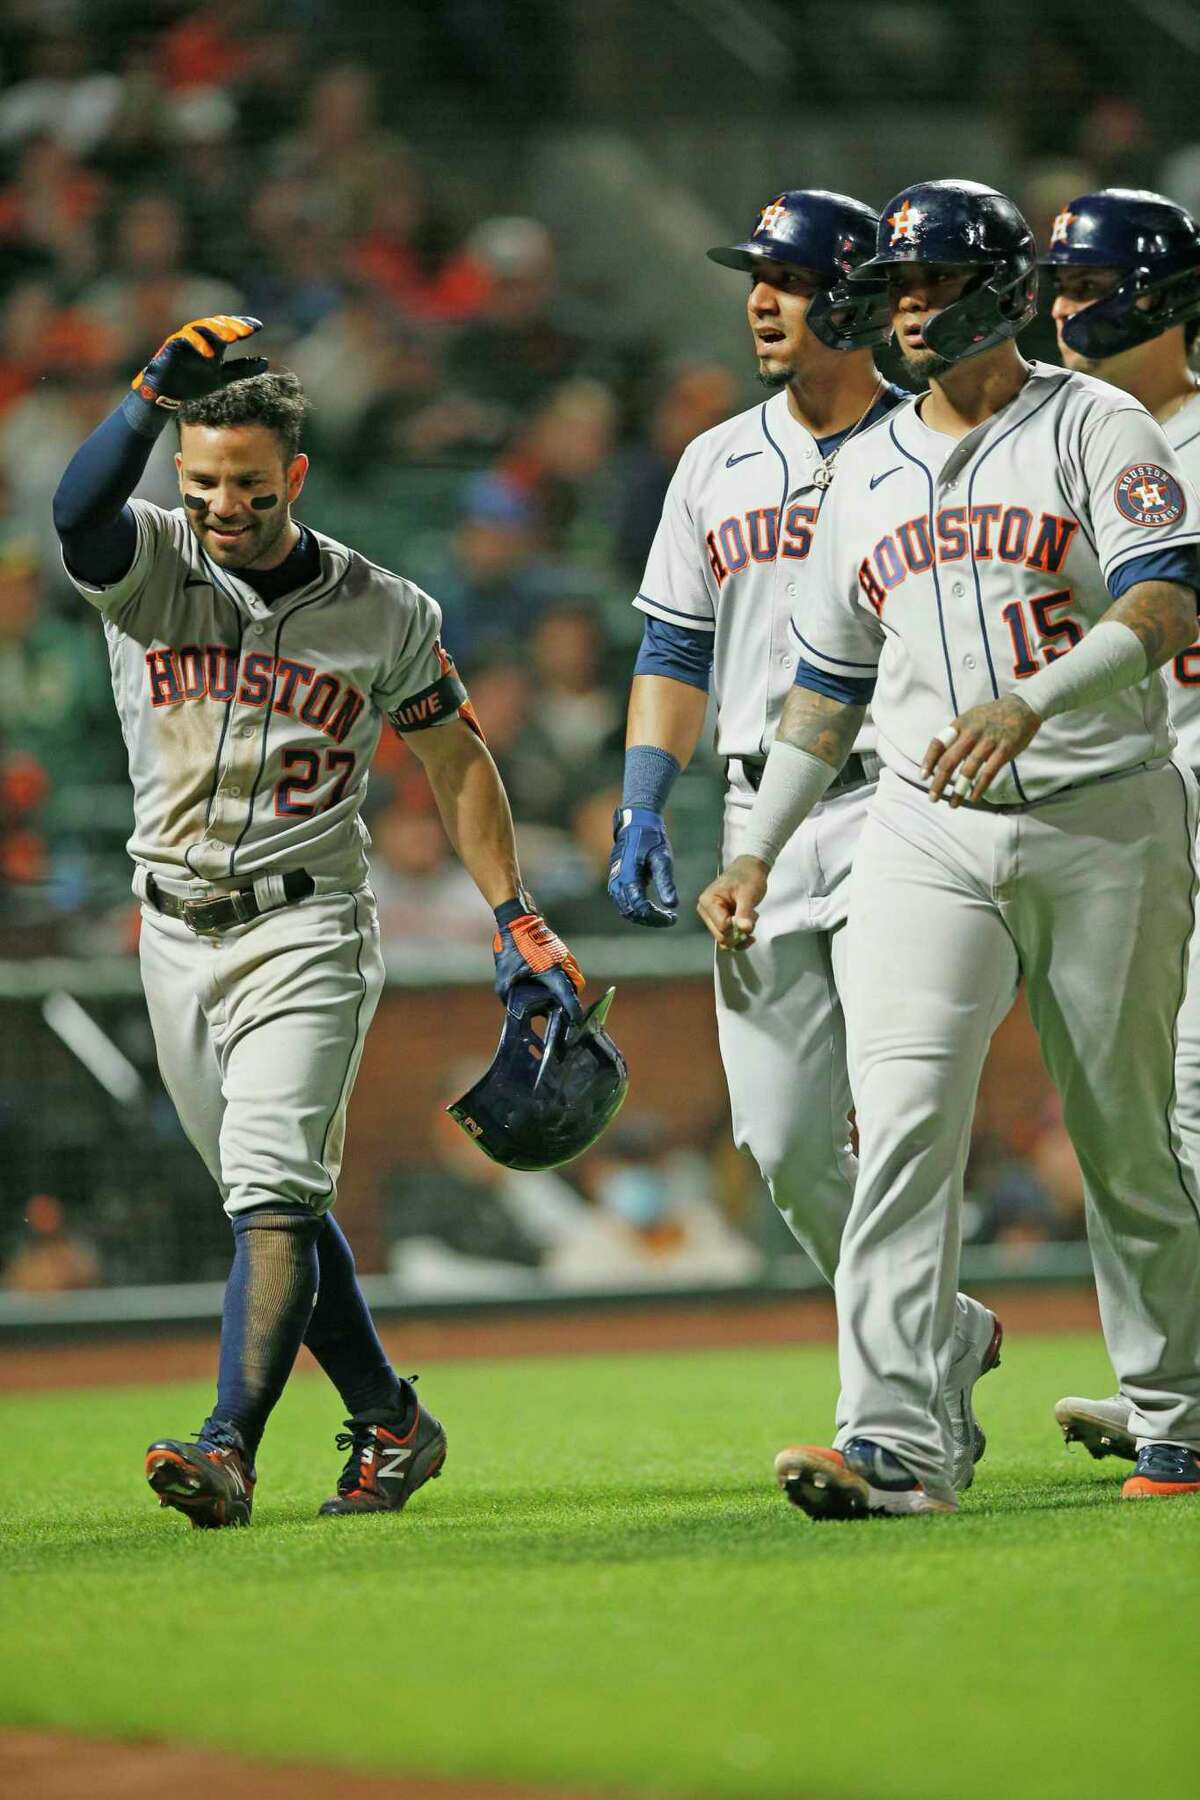 Houston Astros second baseman Jose Altuve (27) walks to the dugout with his teammates after Altuve hit a grand slam home run in the sixth inning during an MLB game against the San Francisco Giants at Oracle Park, Friday, July 30, 2021, in San Francisco, Calif.